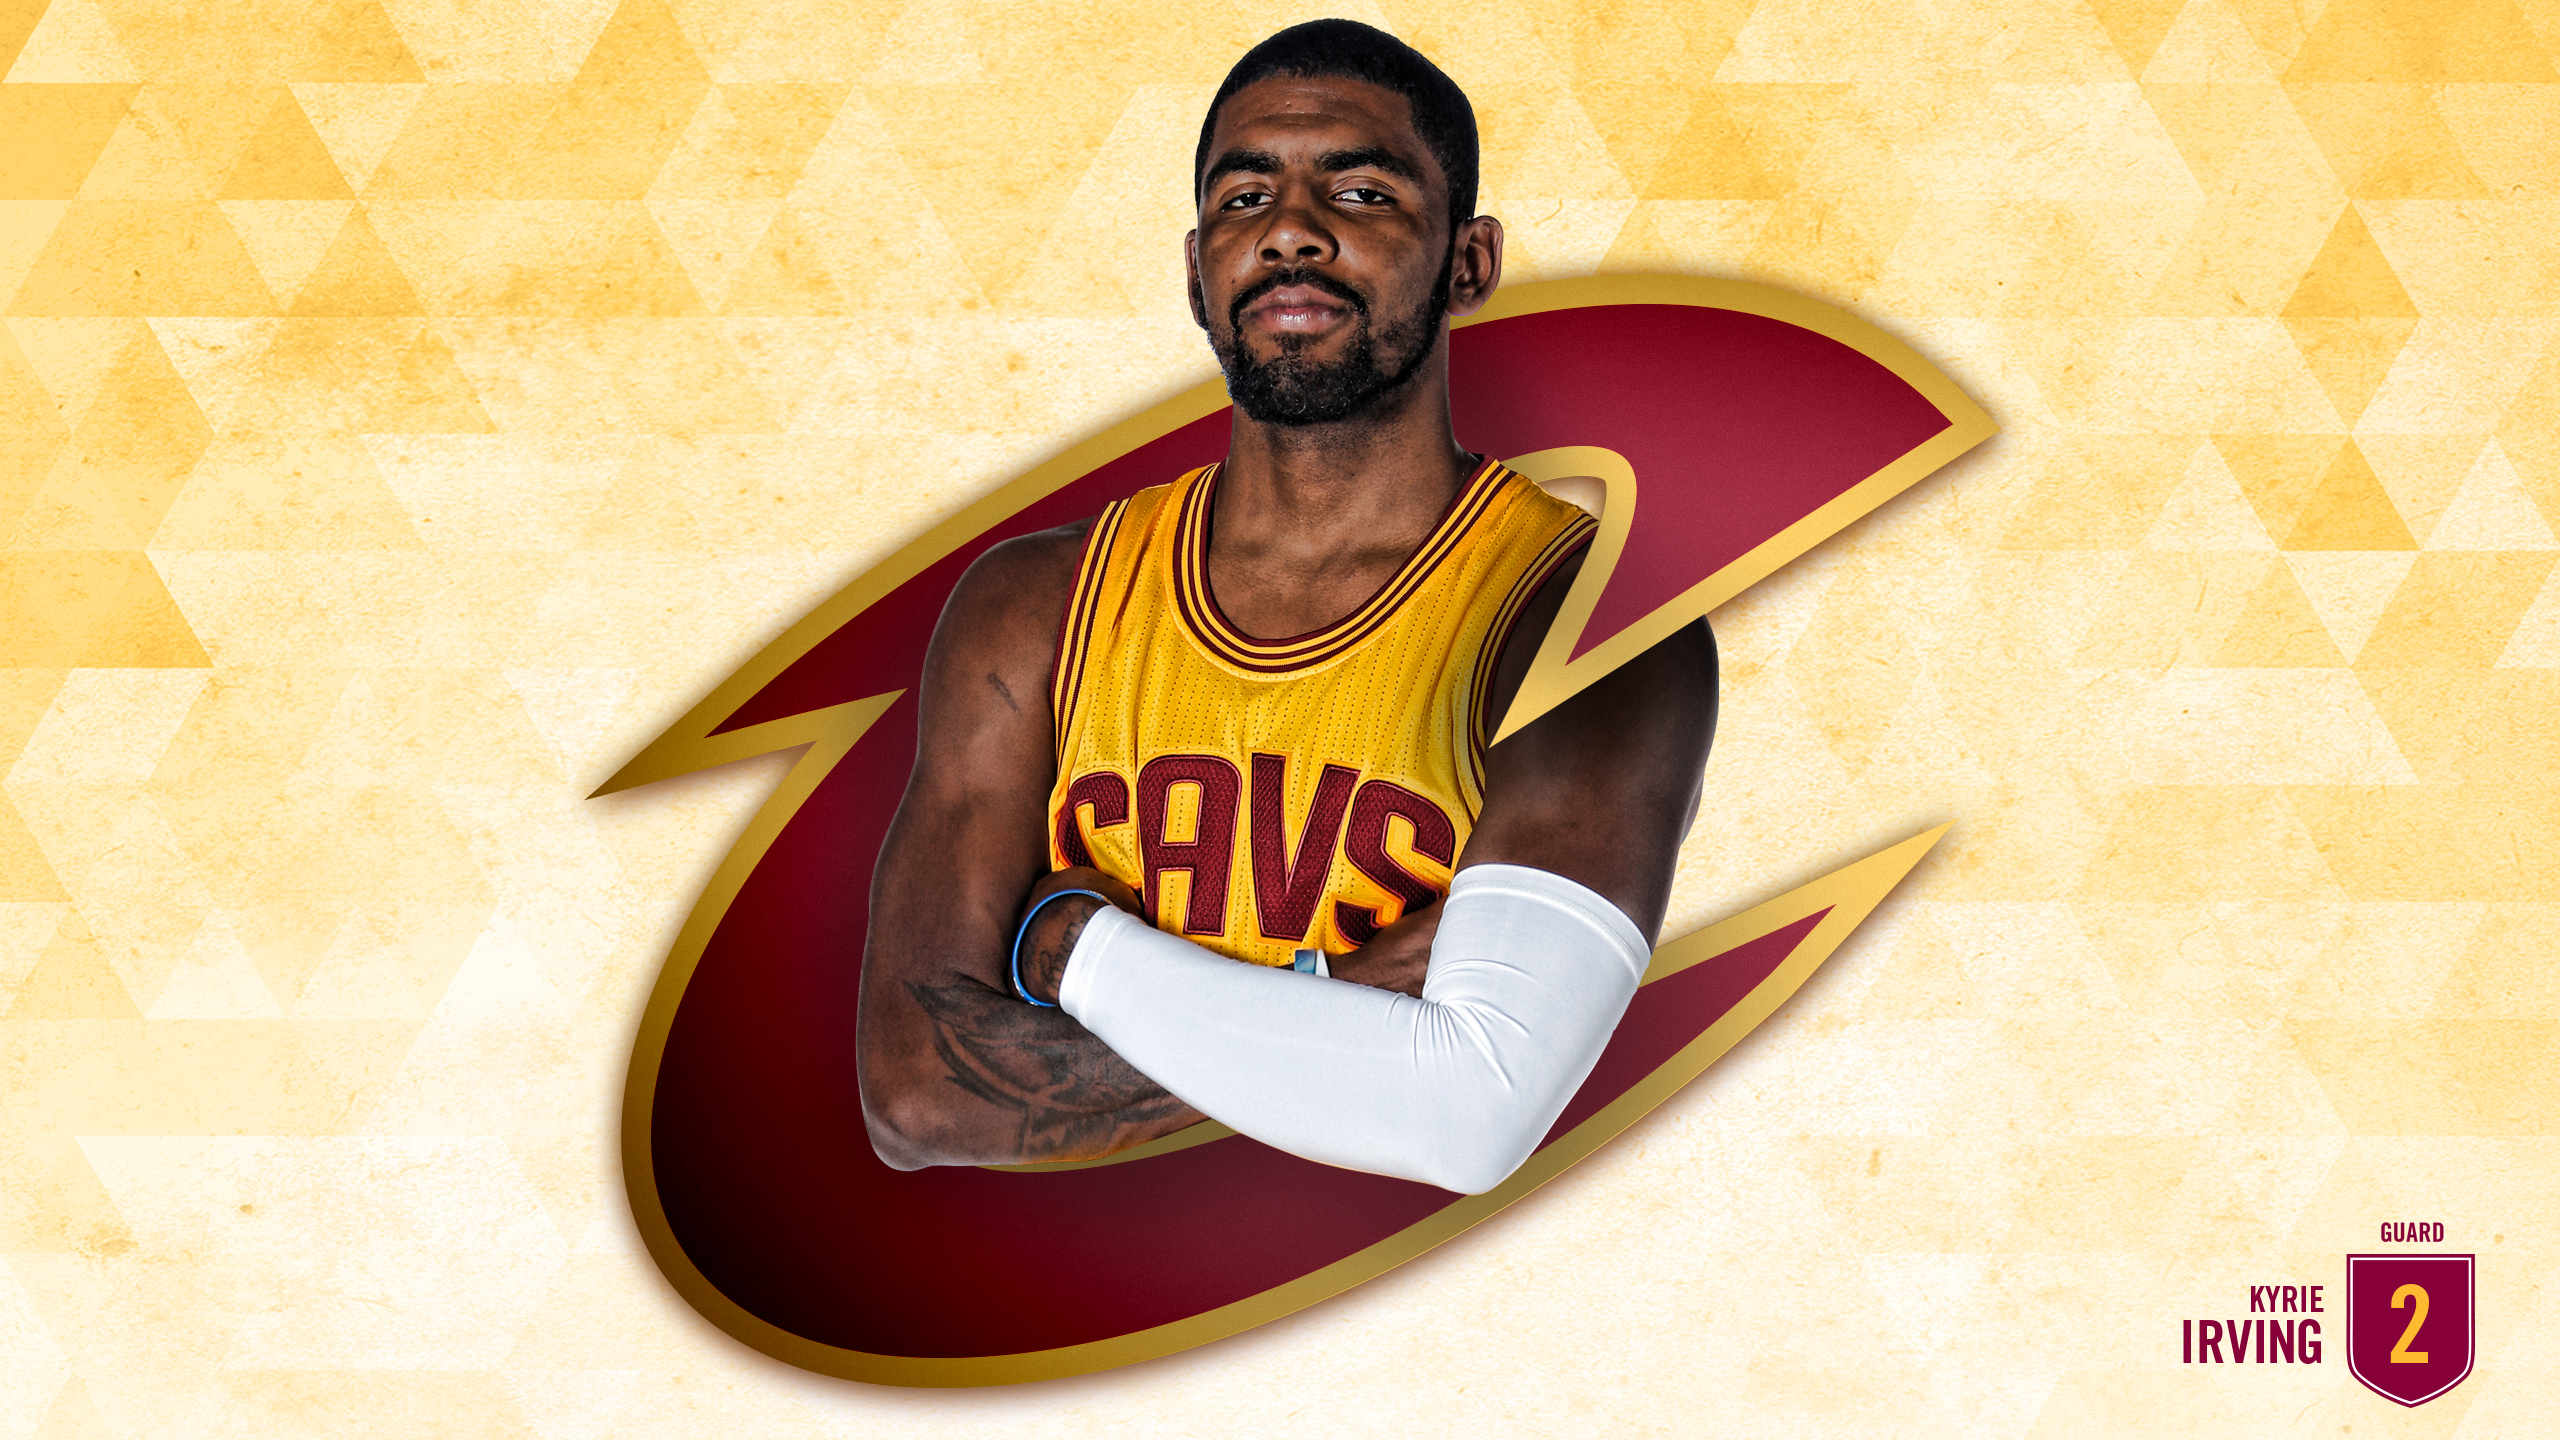 kyrie irving wallpapers high resolution and quality download